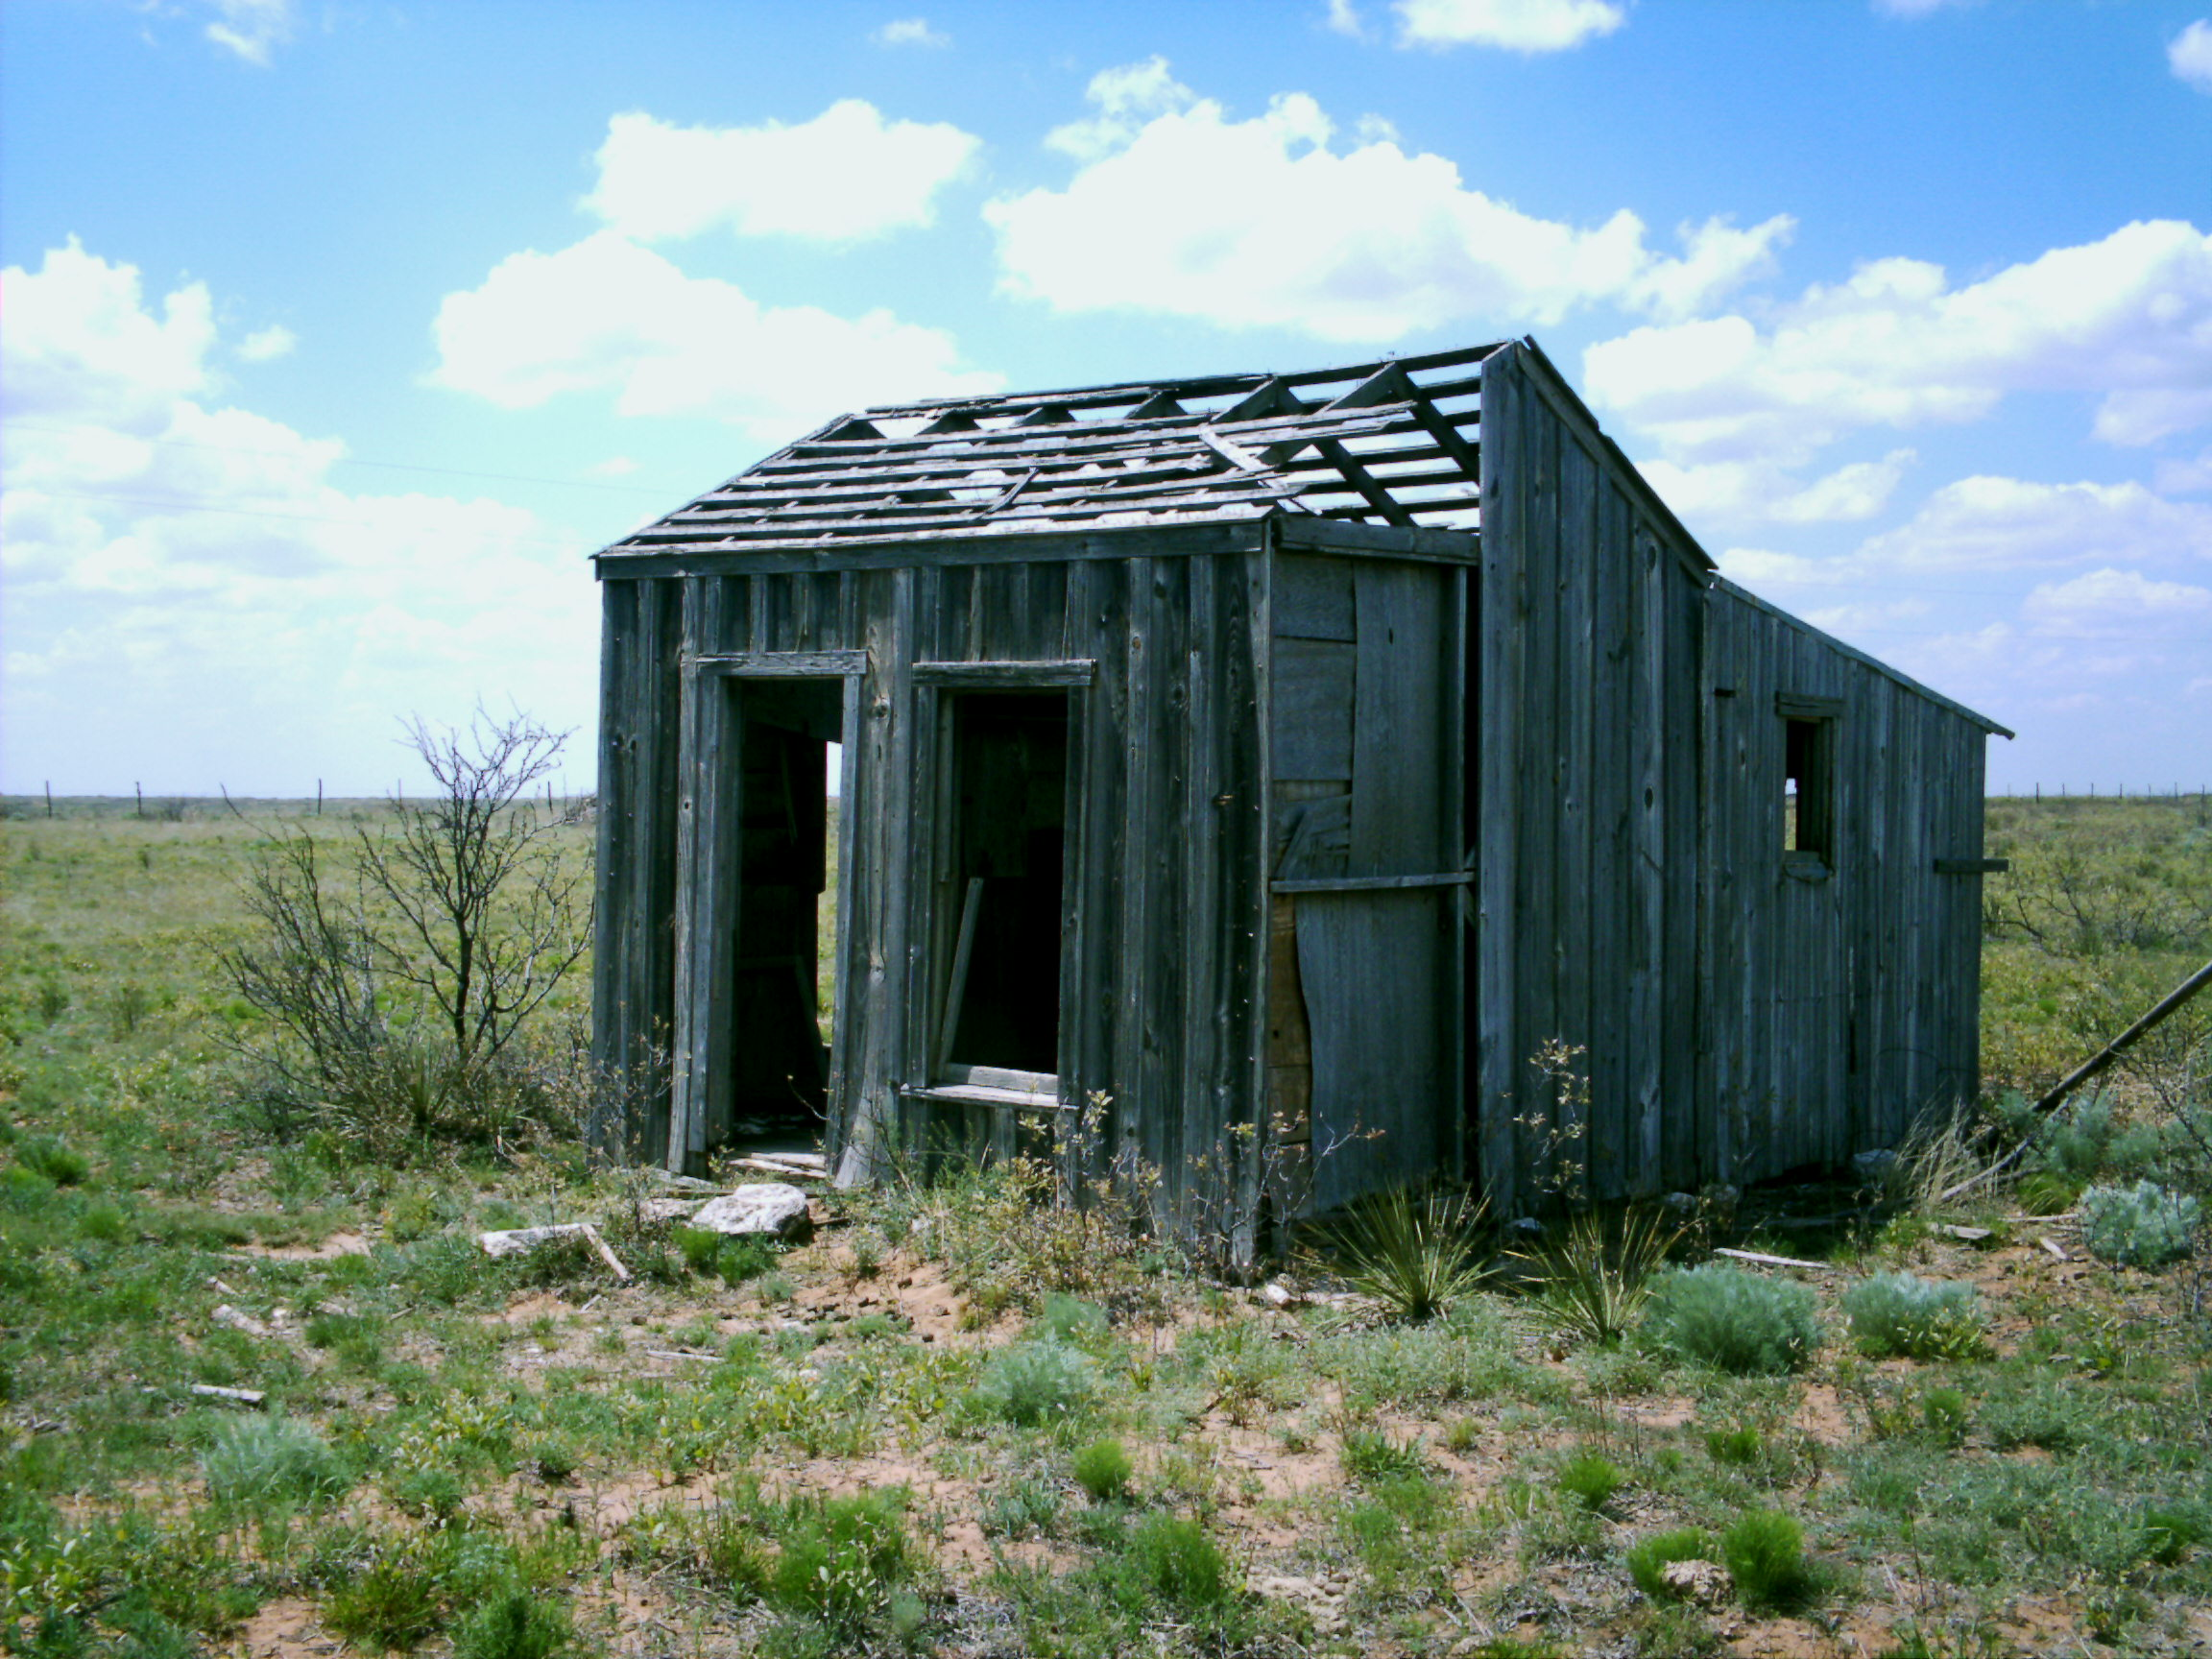 This is the shack that Jack built.